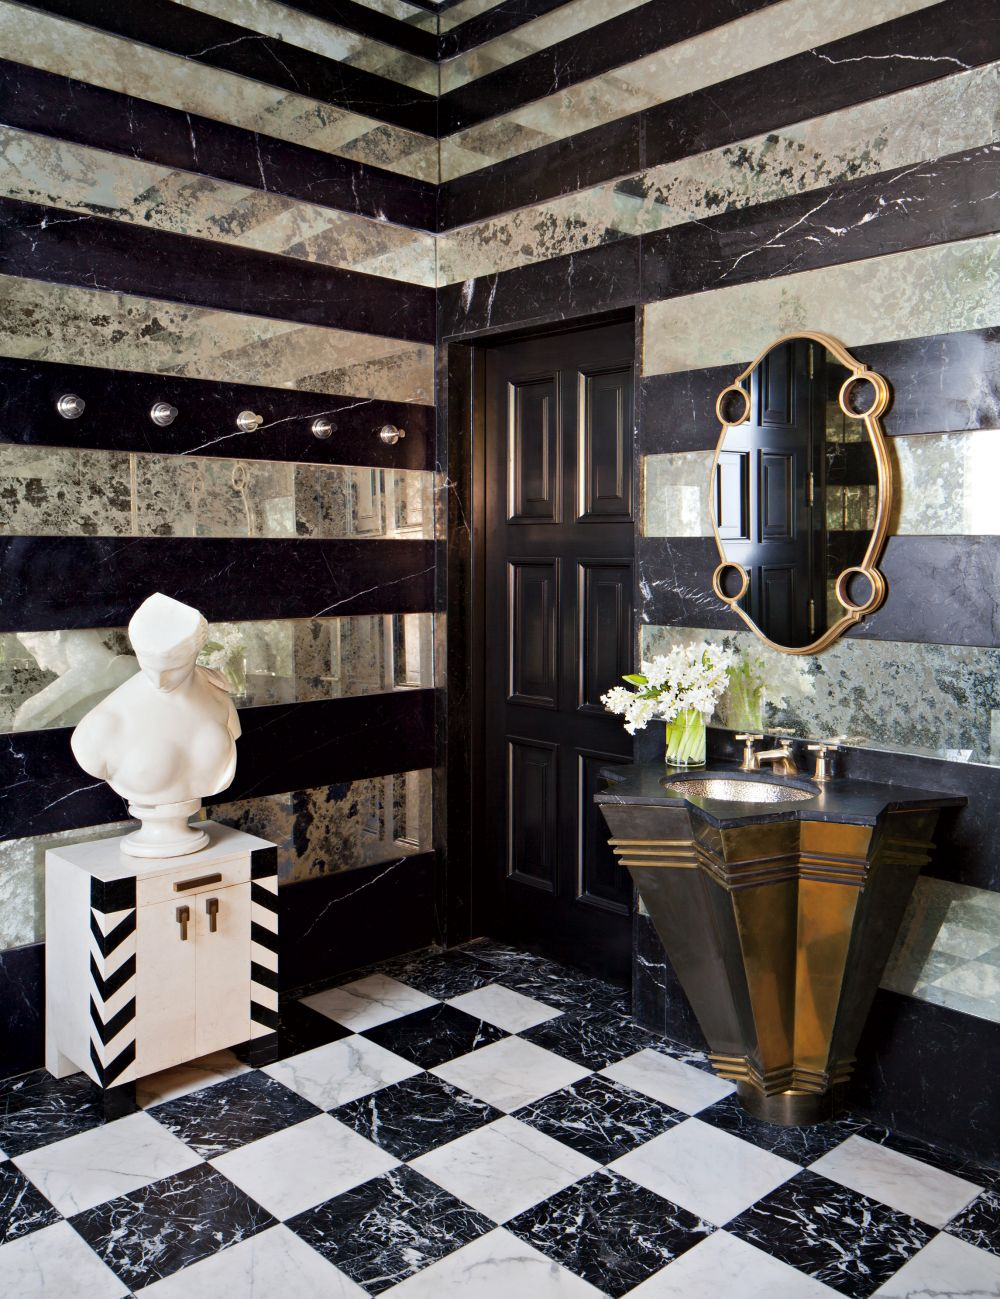 Marbled checkered floors in a state-of-the-art bathroom